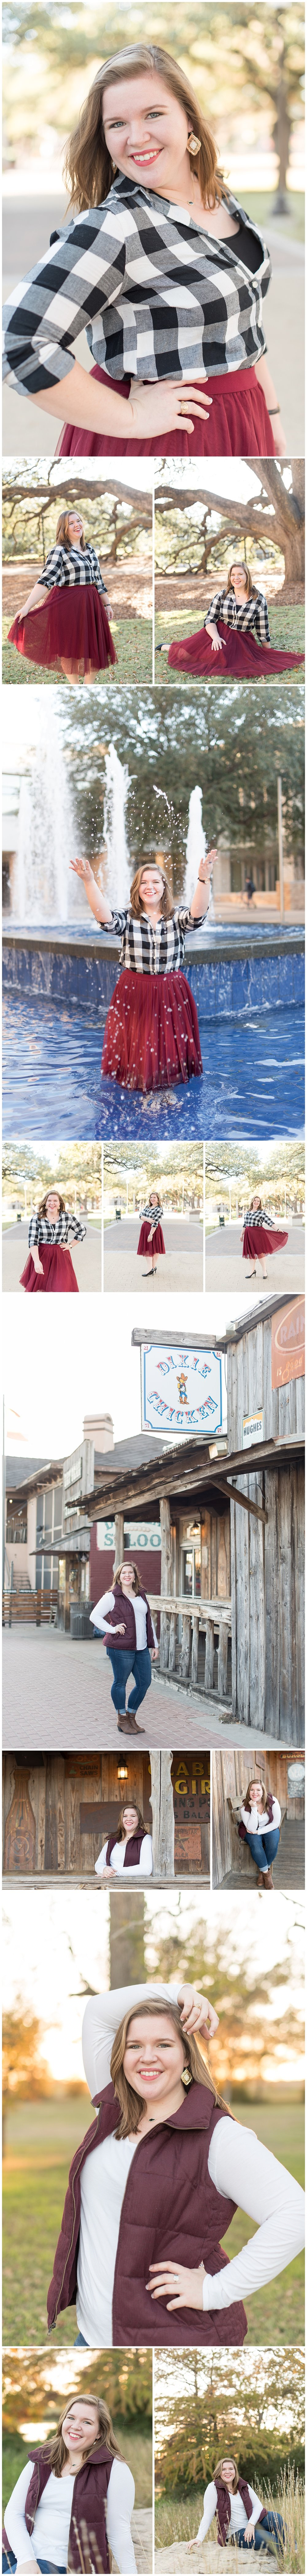 Texas A&M University Senior Session | College Station, TX | Katelyn Todd Photography